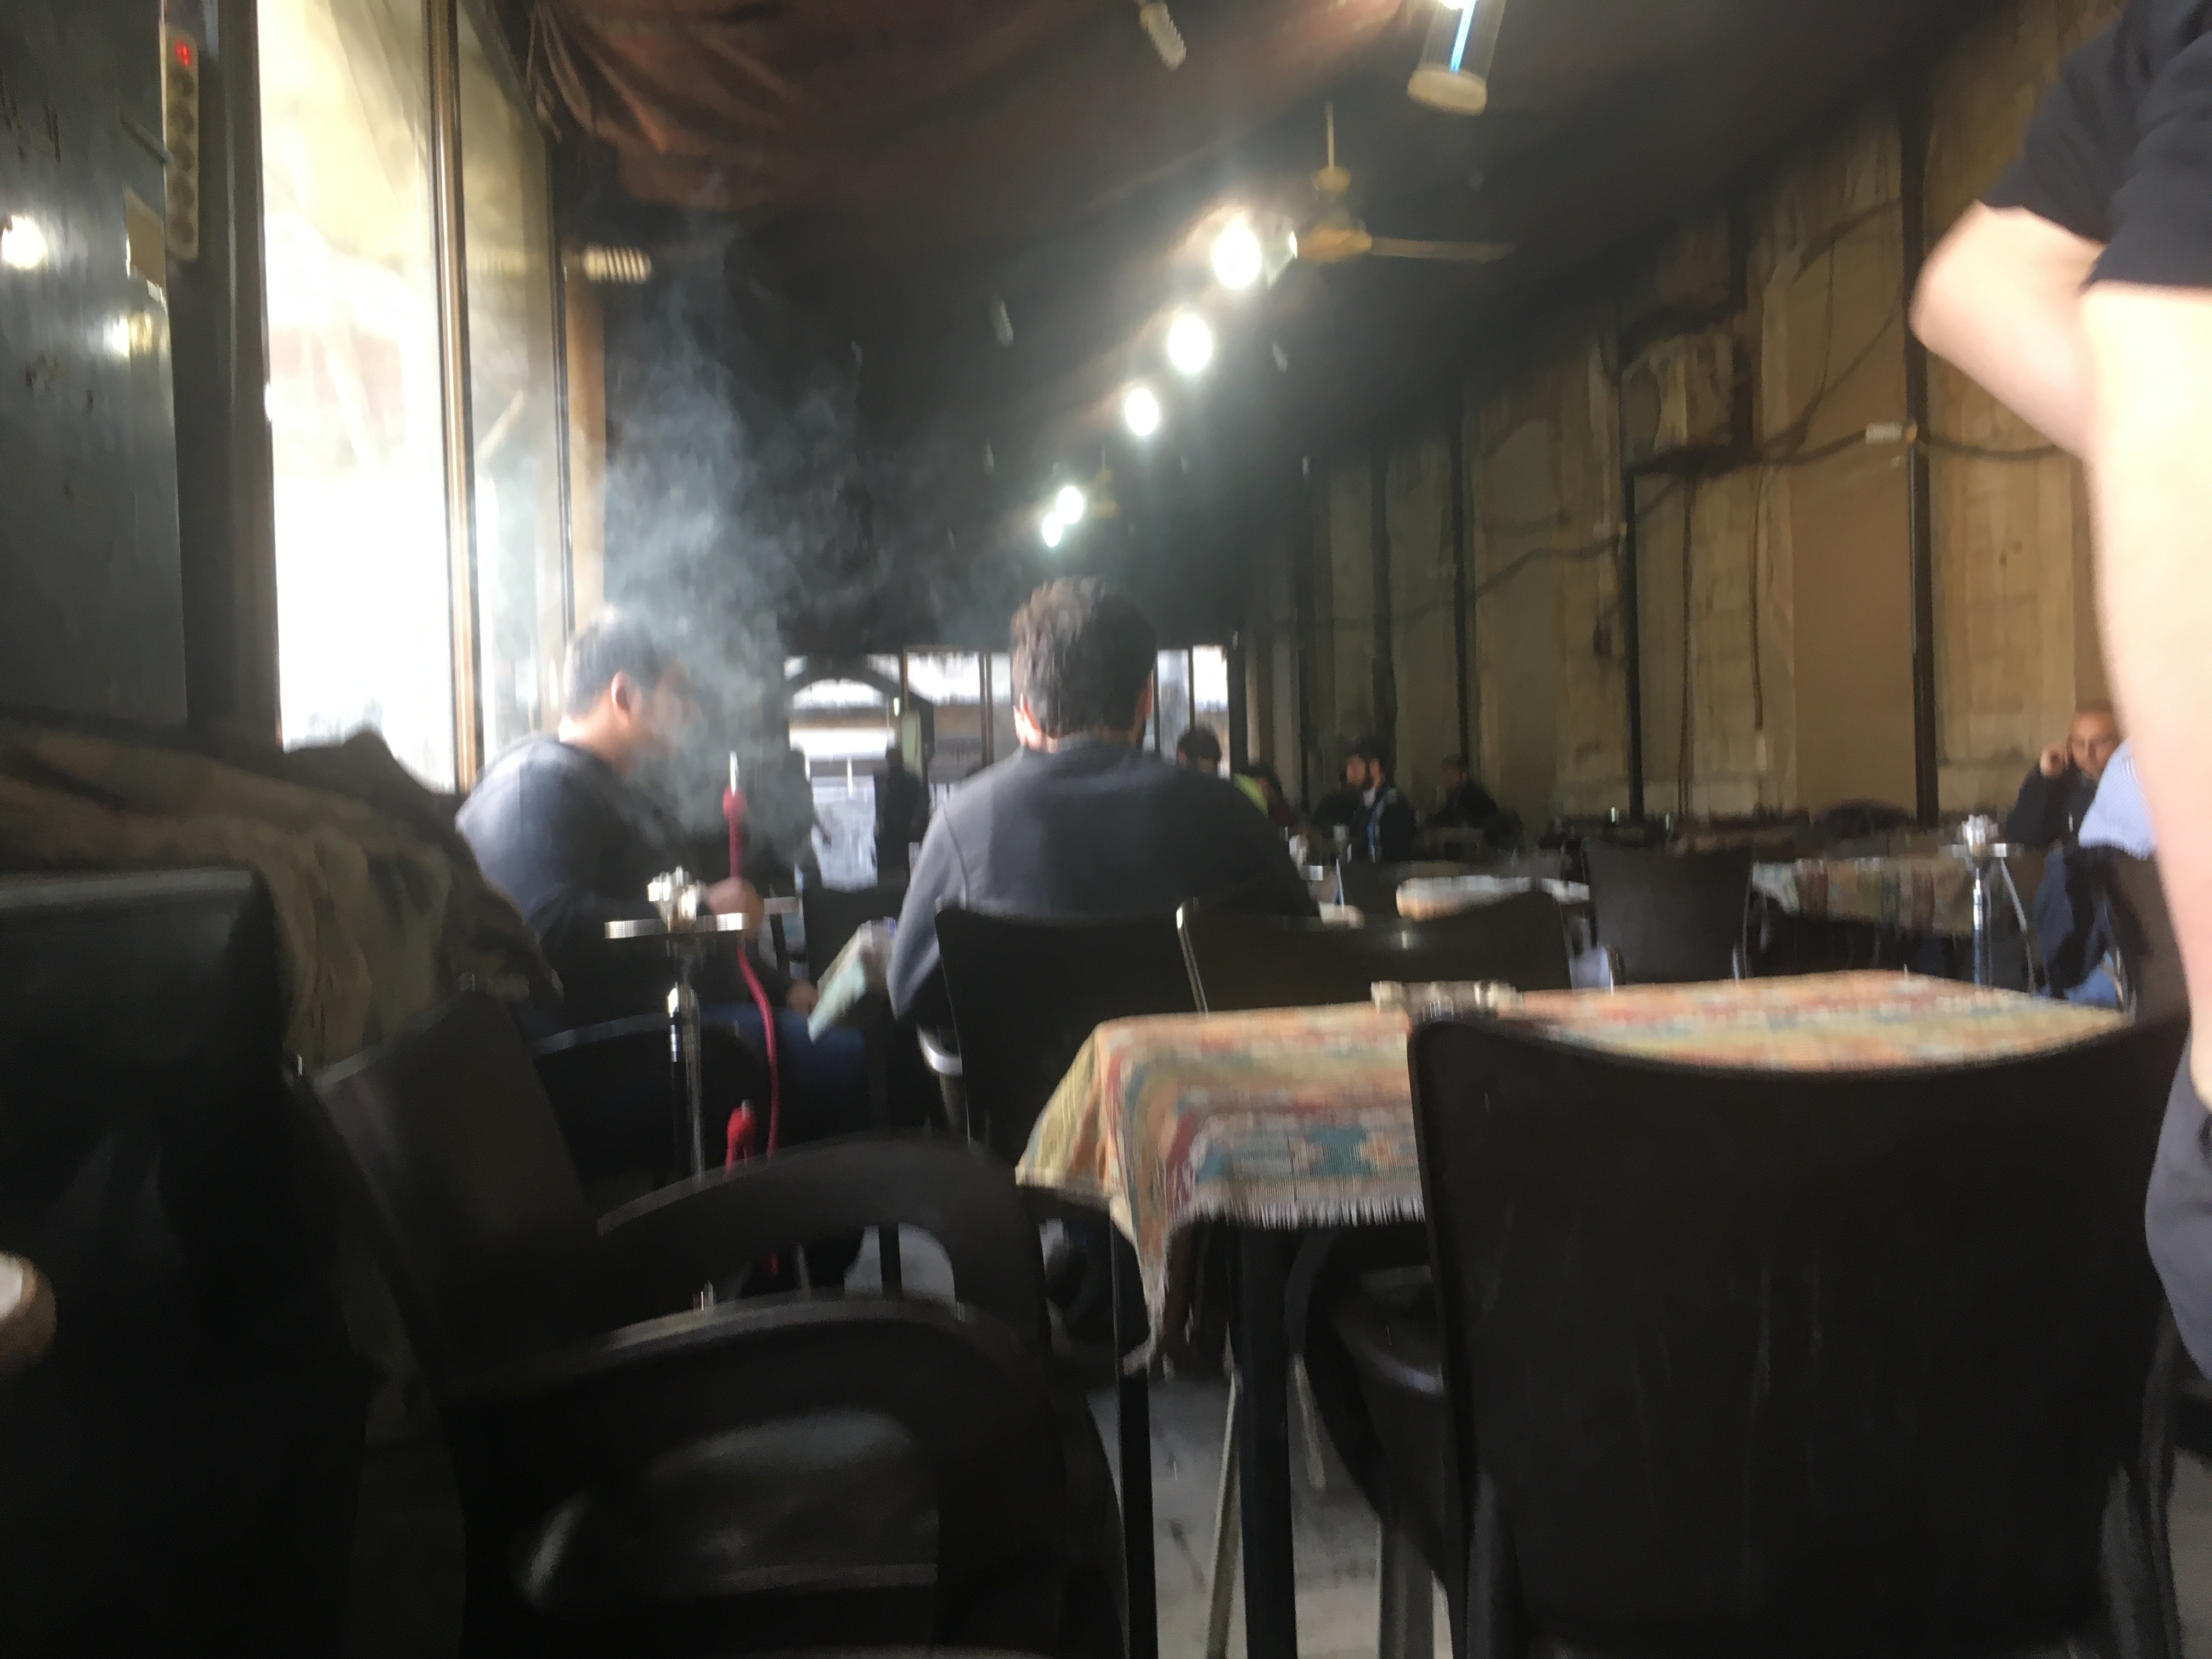 62. Damascus cafe. Photo 05 03 2018 15.20.08